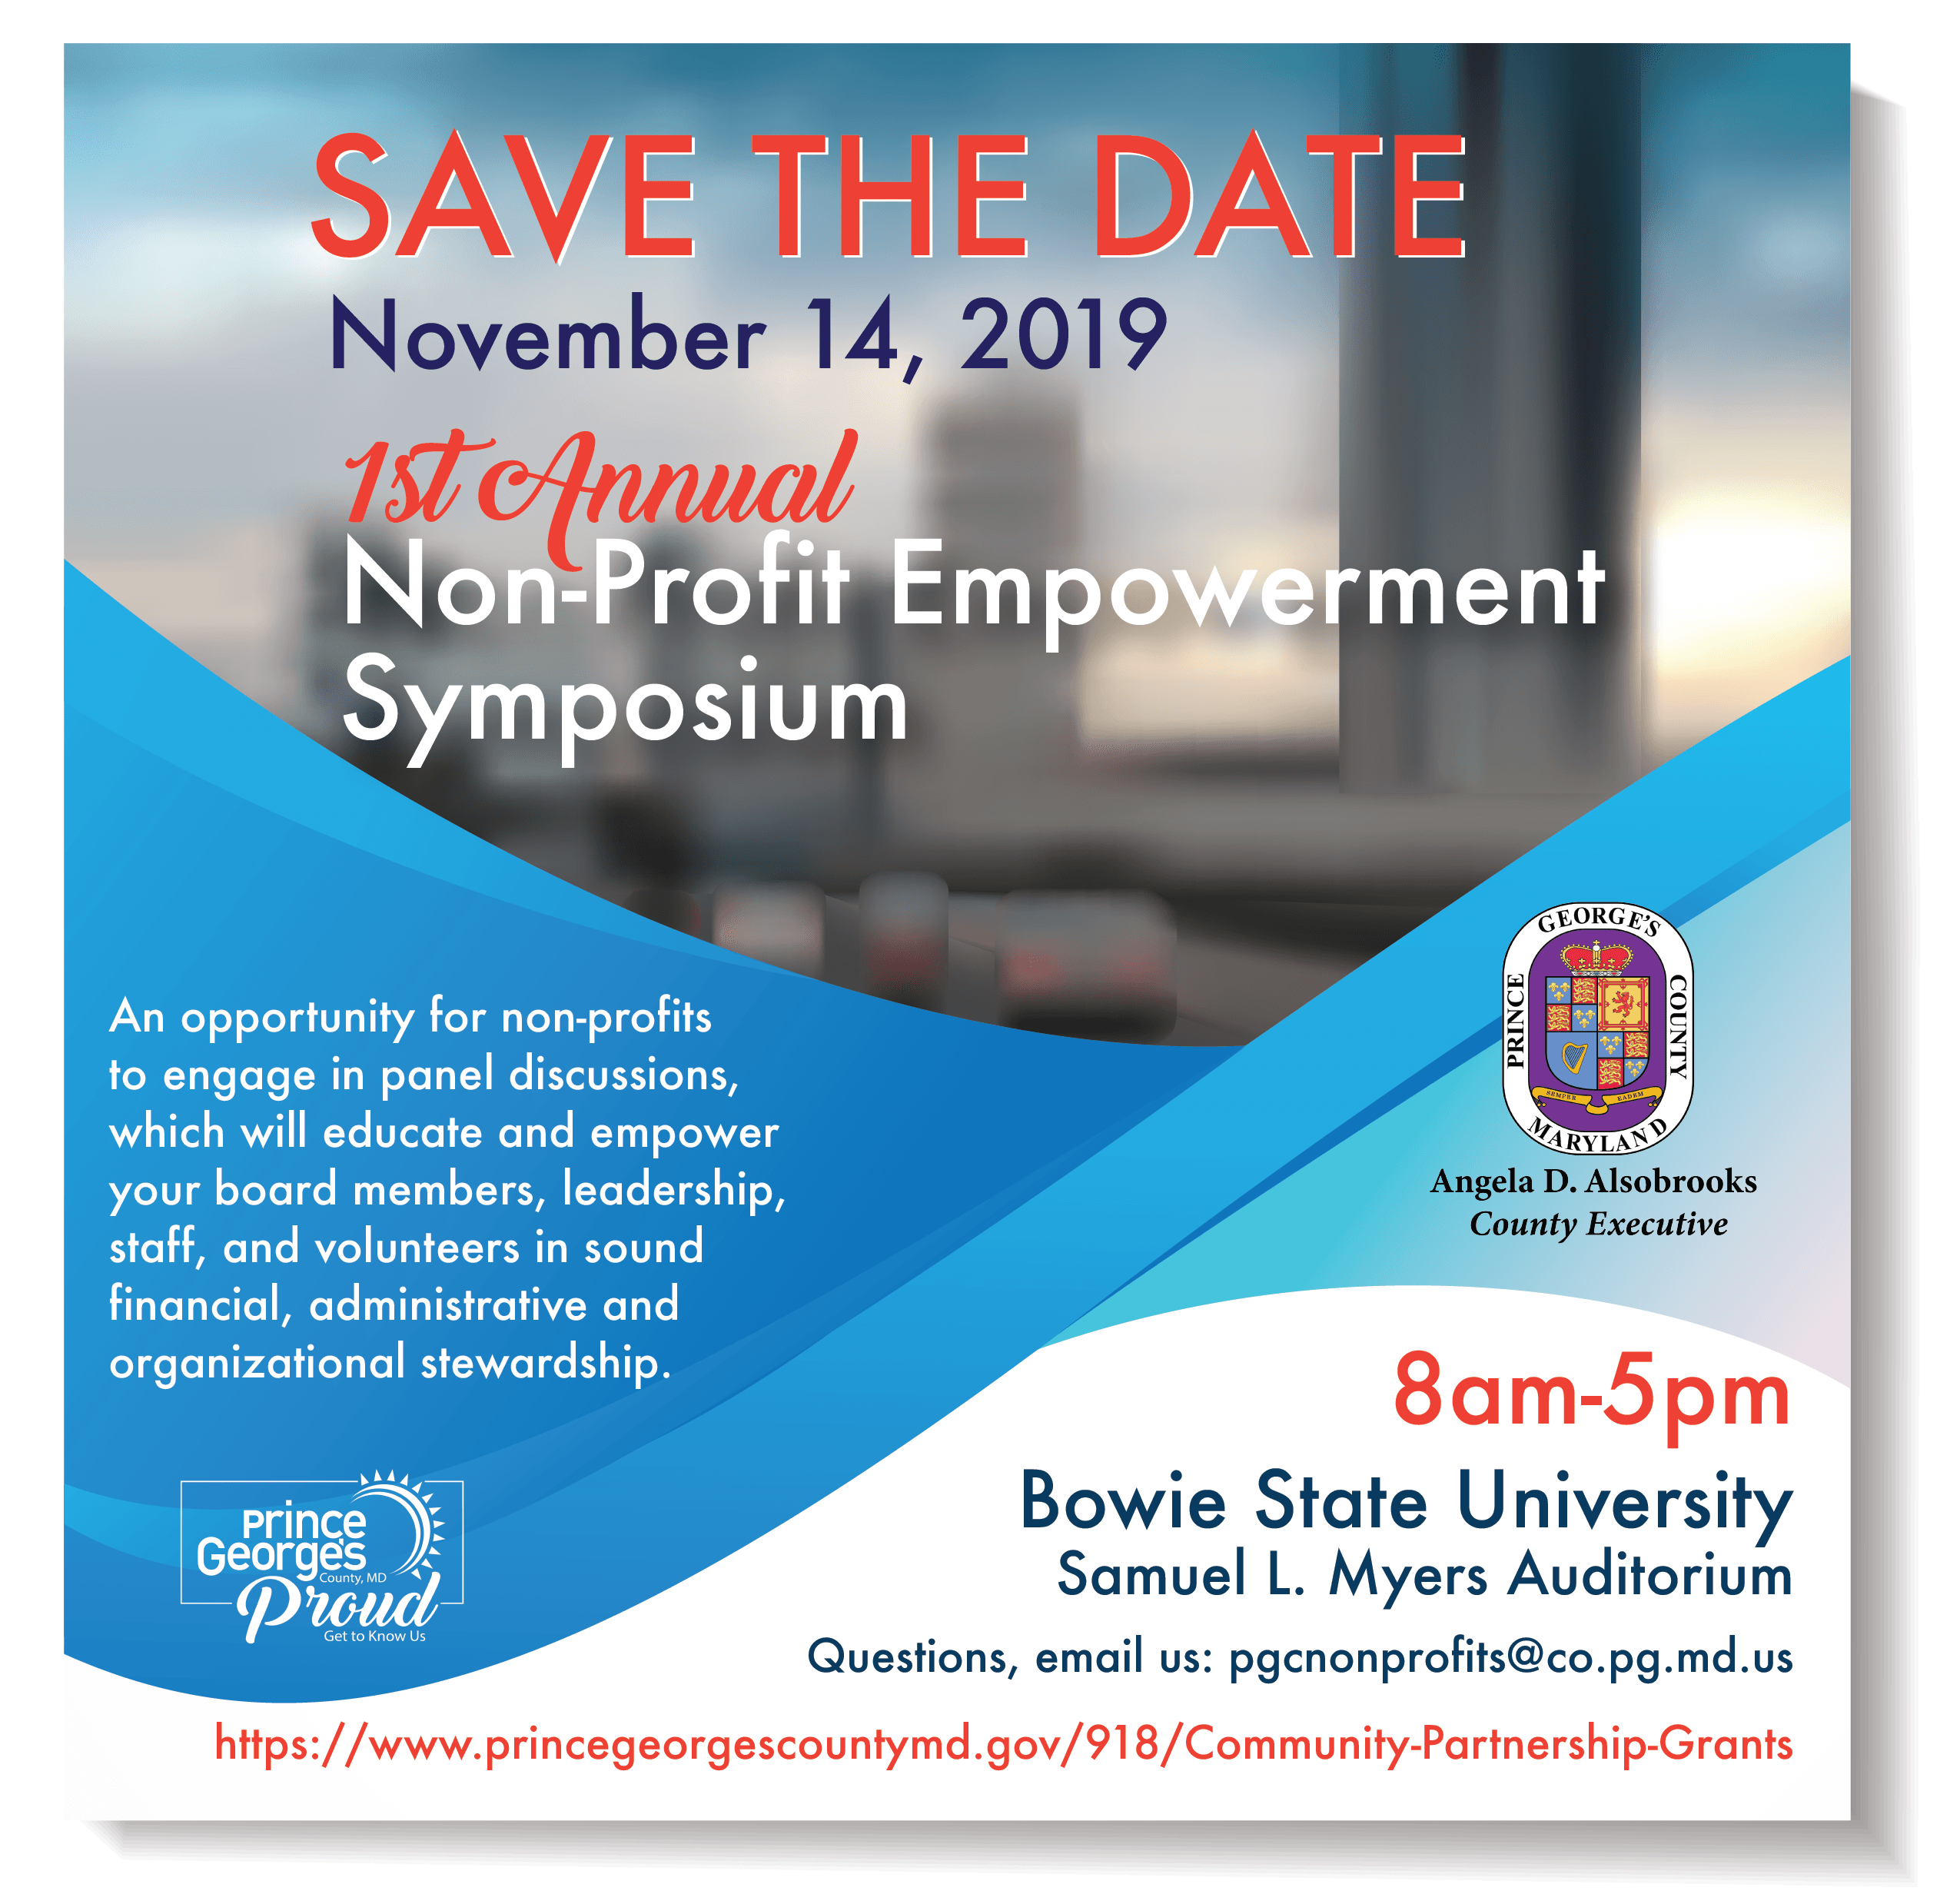 Save the Date, Non-Profit Empowerment Symposium Flyer. Click for calendar details